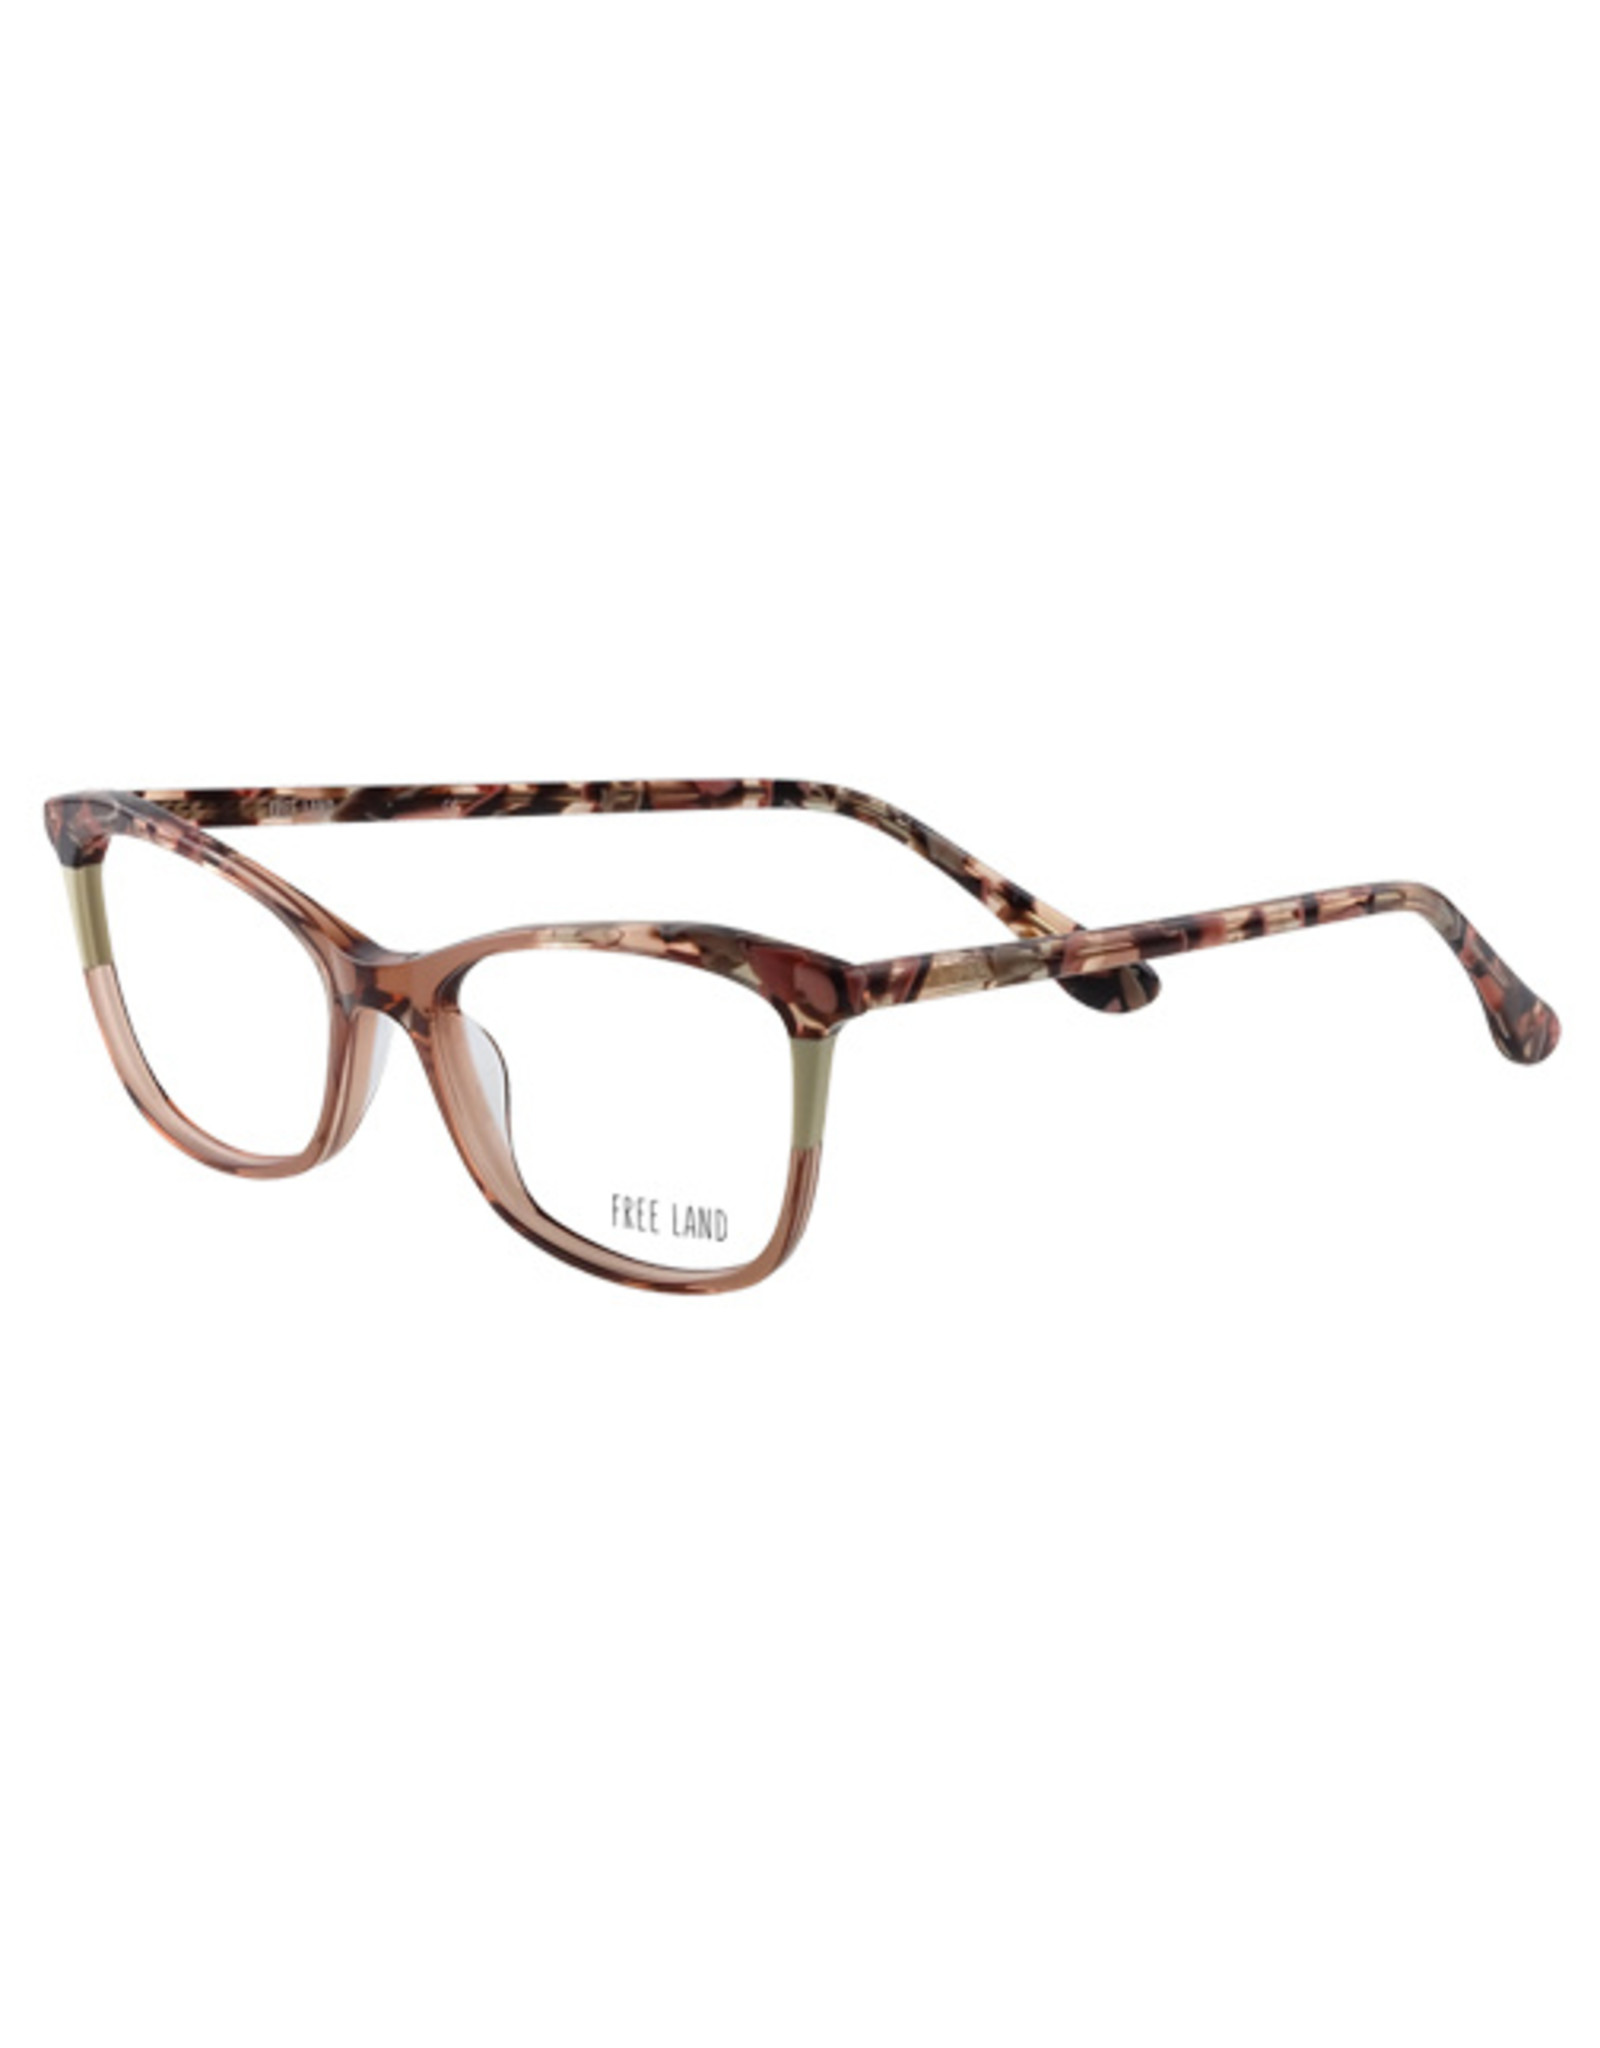 Freeland Mary 71105 351 (brown transp)